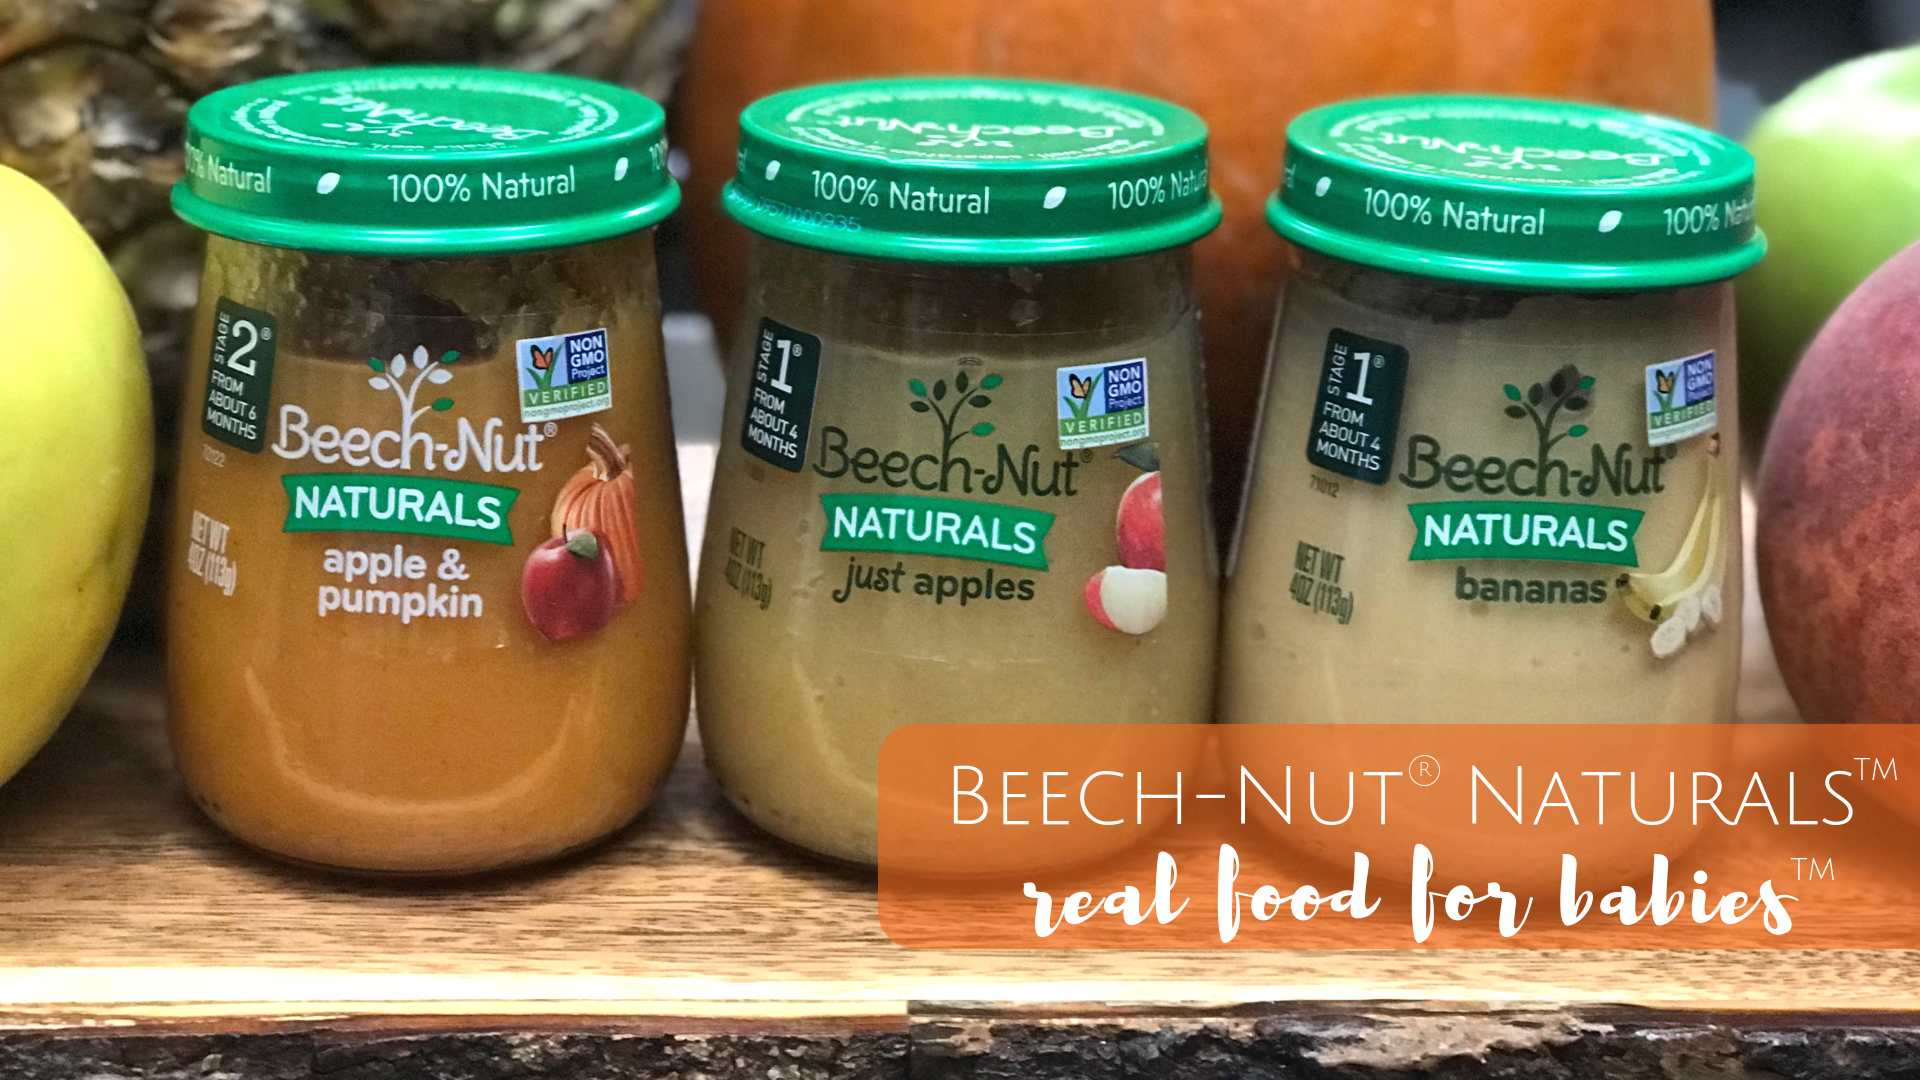 Beech-Nut Naturals: Real Food for Babies